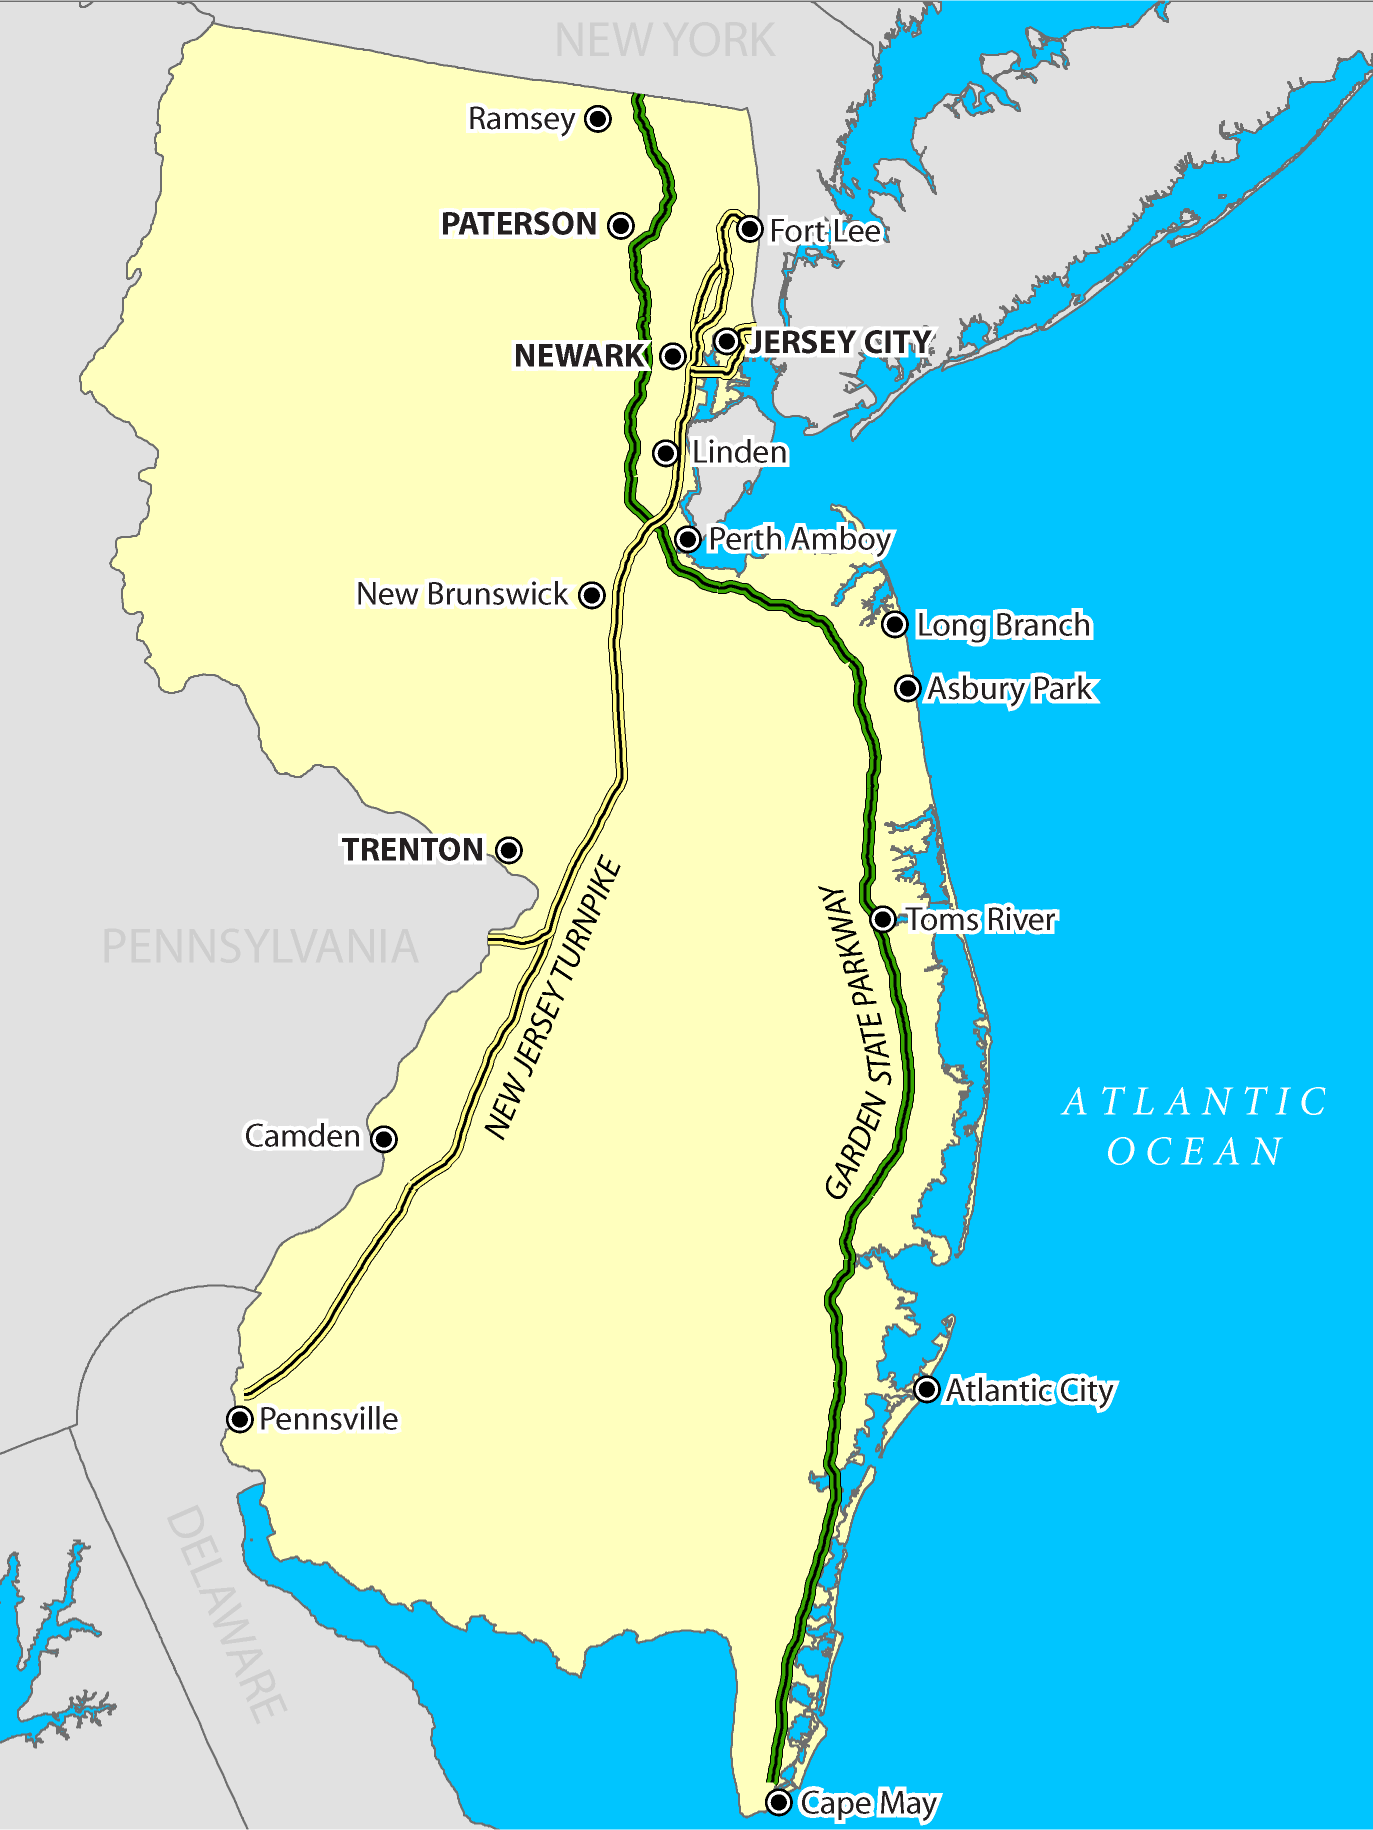 Garden State Parkway Map File:NJ GSPTP.png   Wikimedia Commons